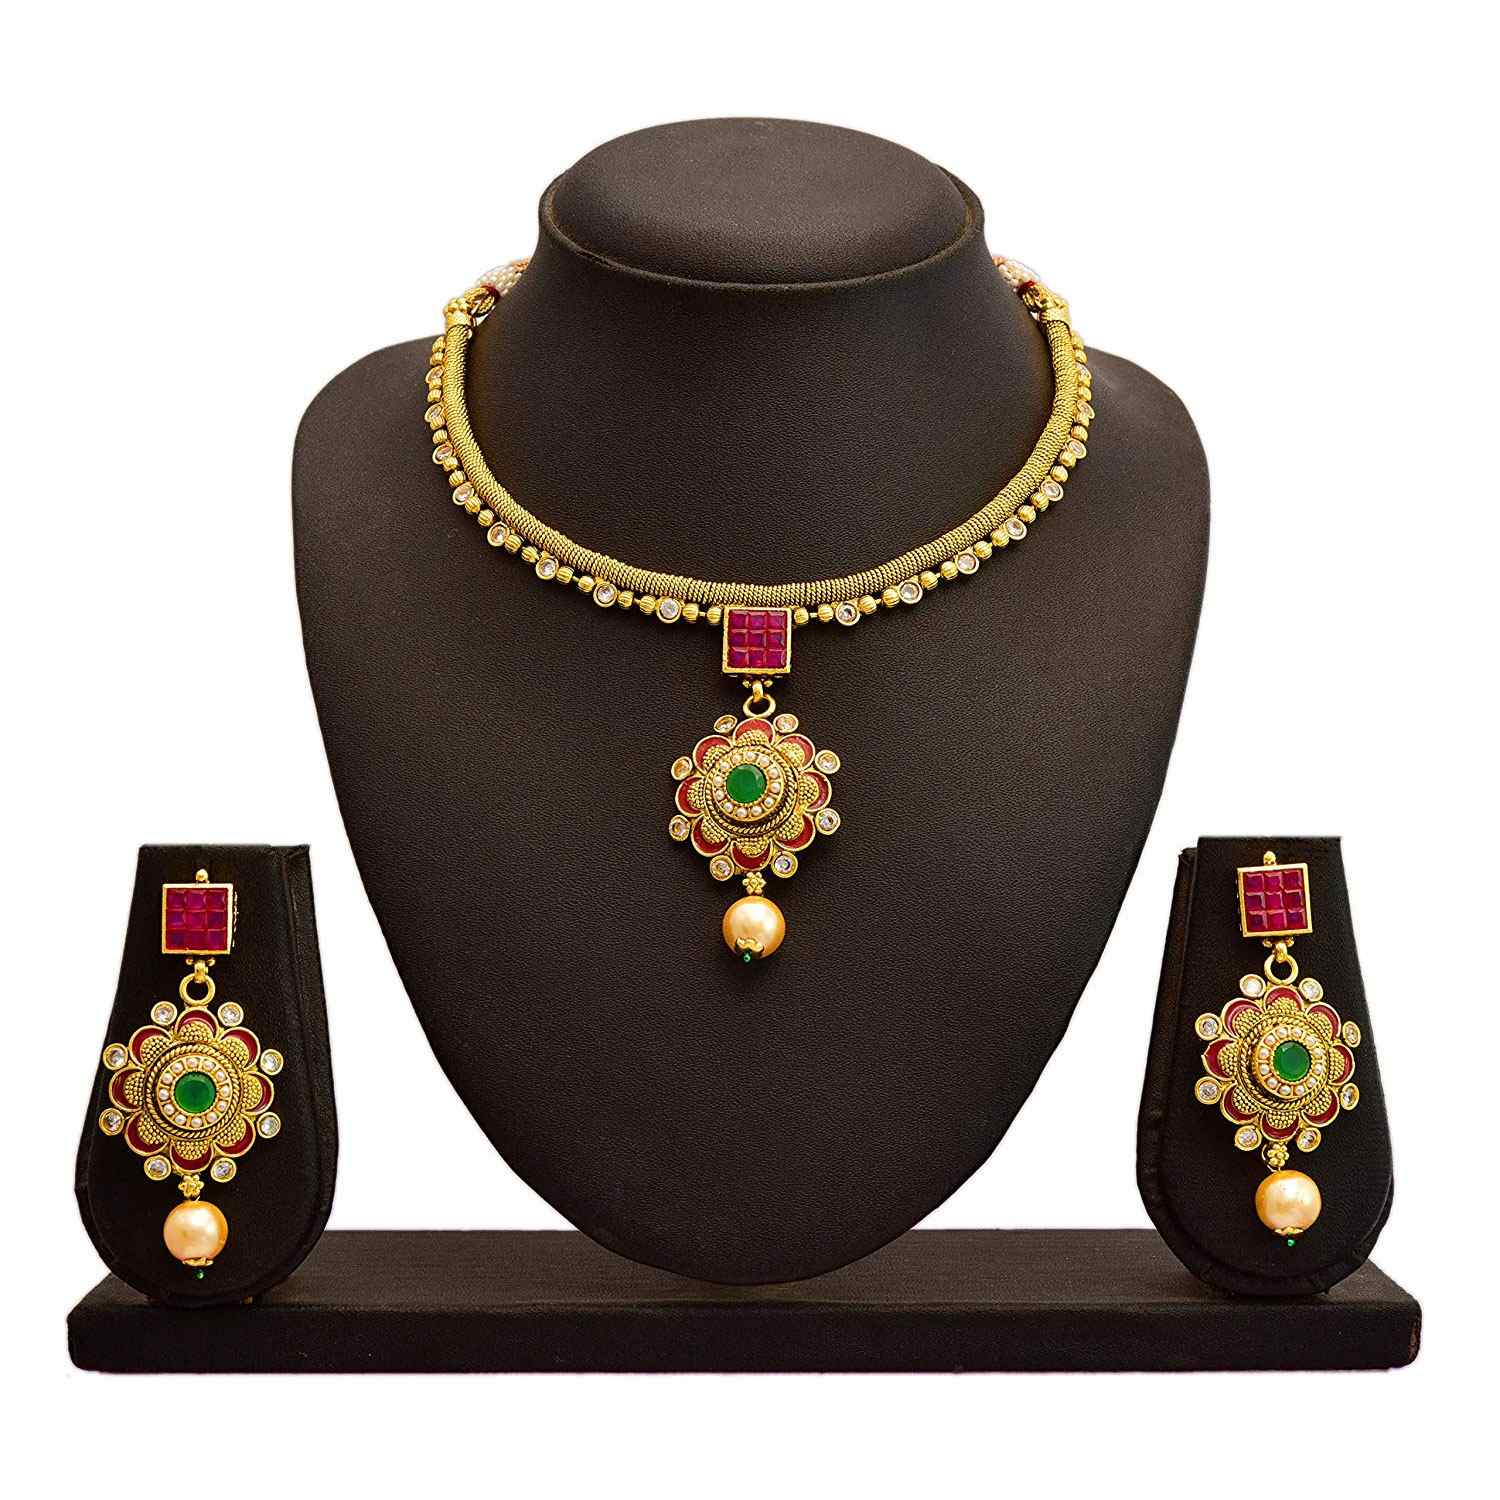 JFL - Traditional Ethnic One Gram Gold Plated Stone Pearl Meenakari Designer Necklace Set with Jhumka Earring for Girls and Women